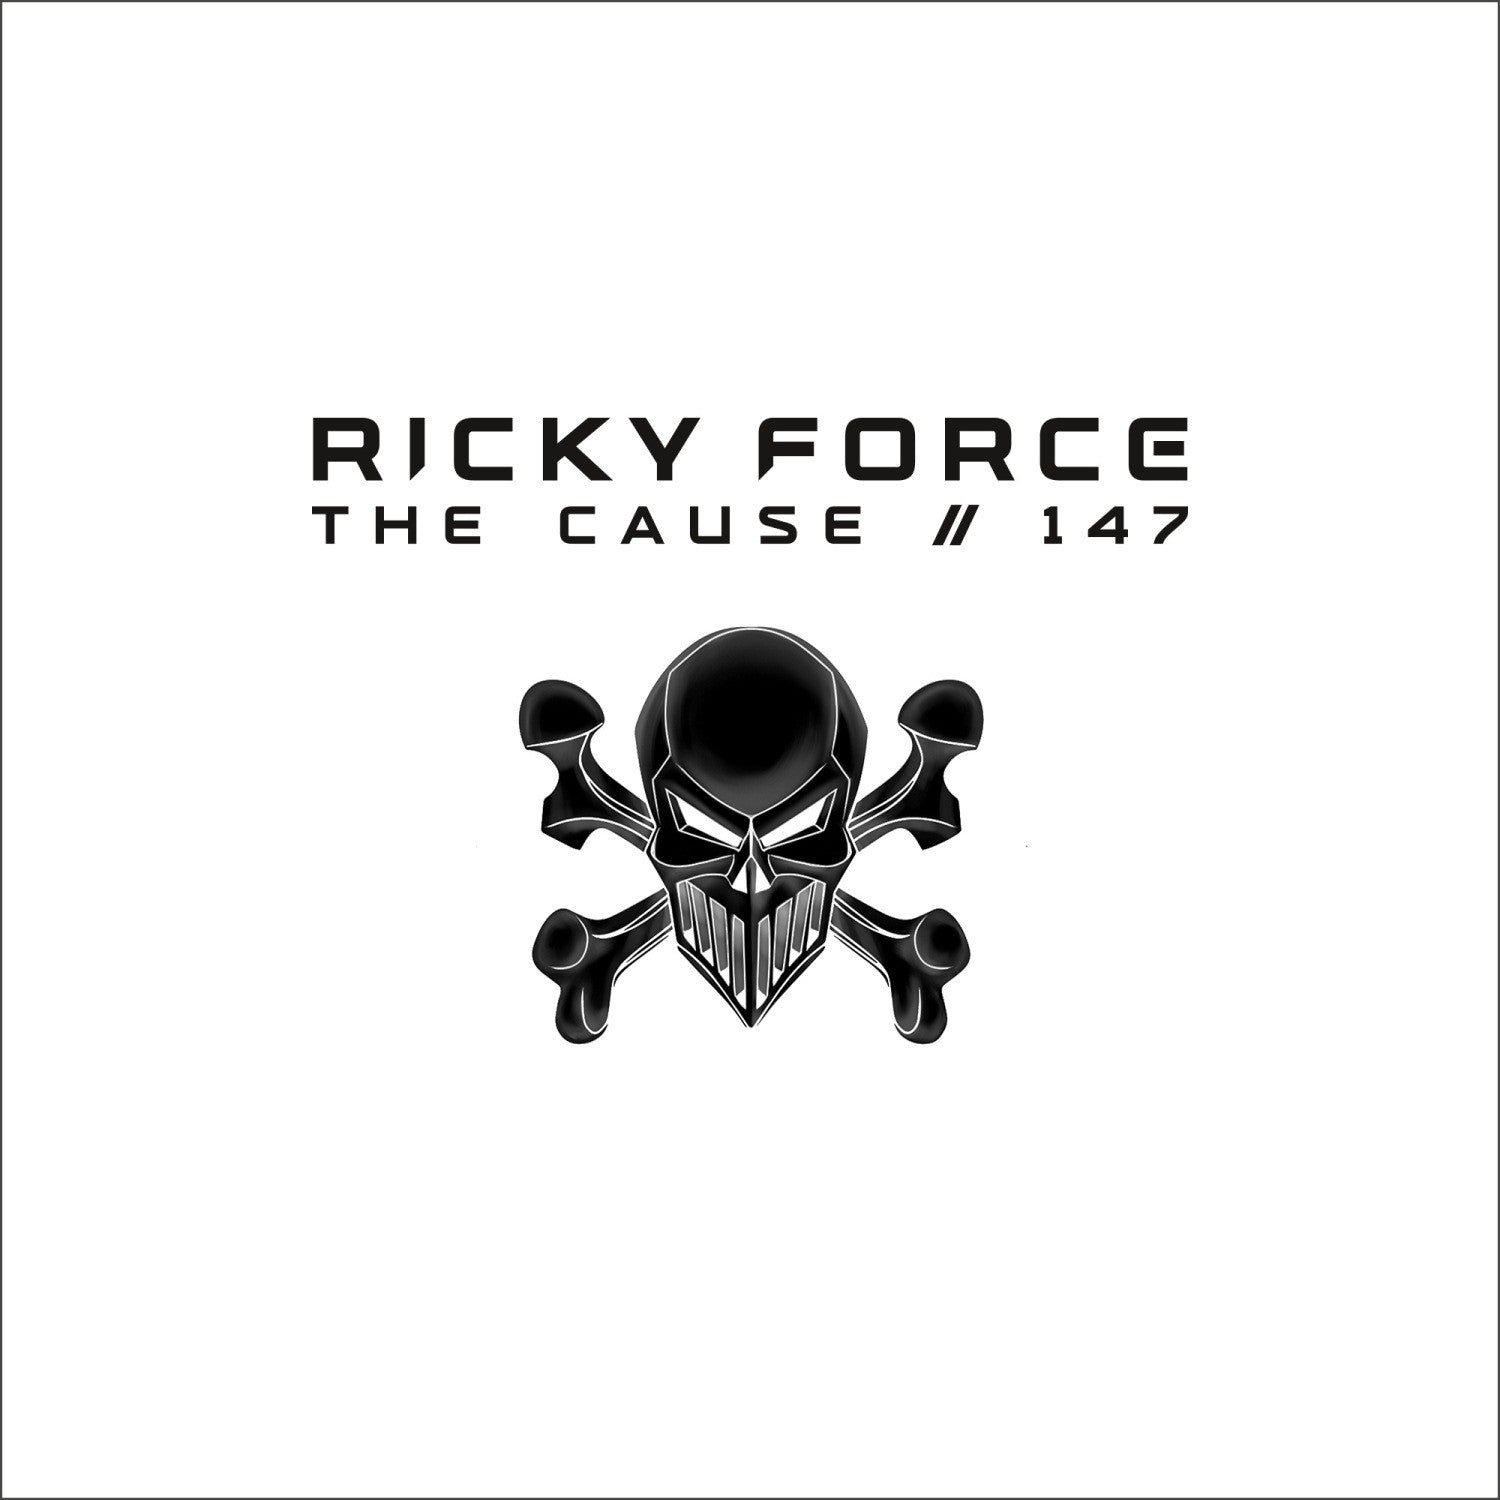 "Ricky Force - The Cause / 147 (10"" White Vinyl w/ Printed Sleeve)"